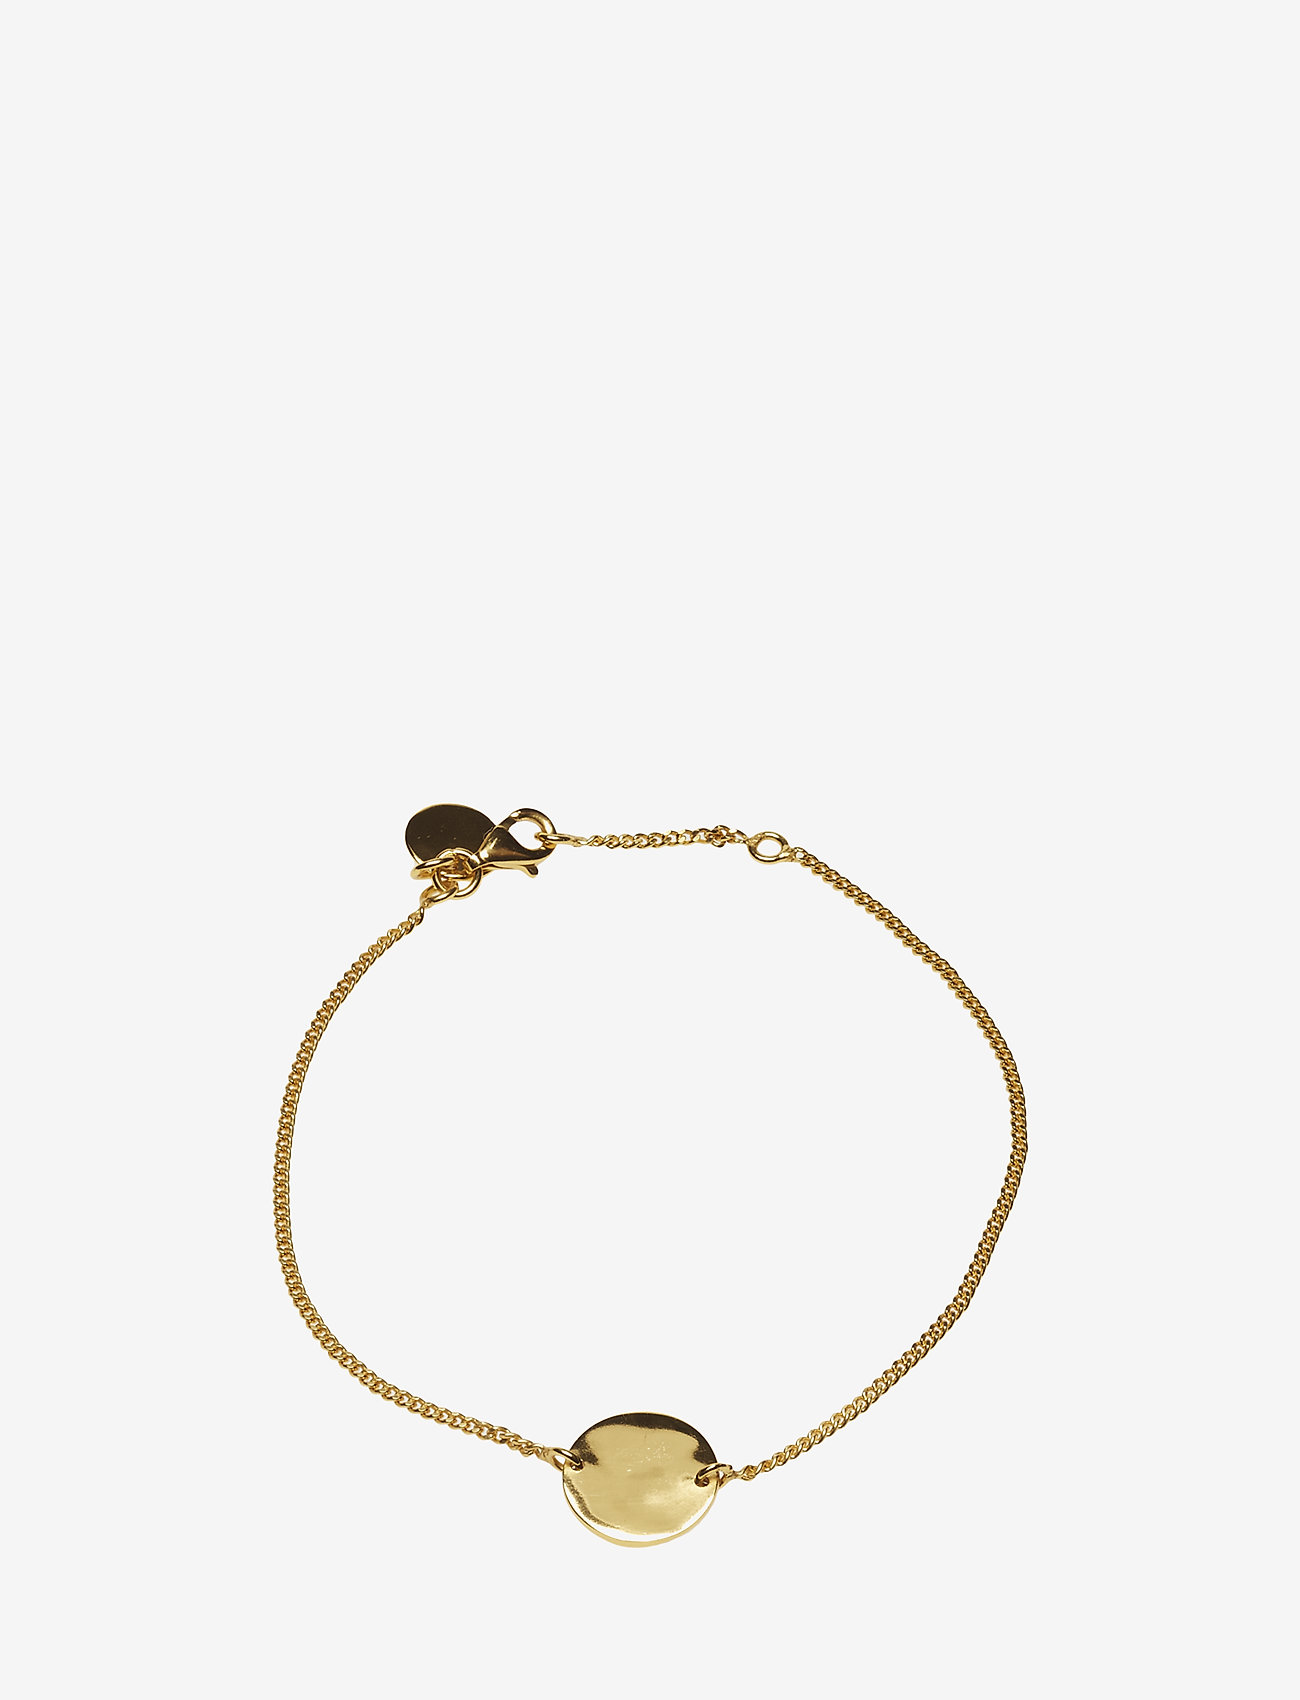 Syster P - MINIMALISTICA HAMMERED CIRCLE BRACELET GOLD - gold - 0